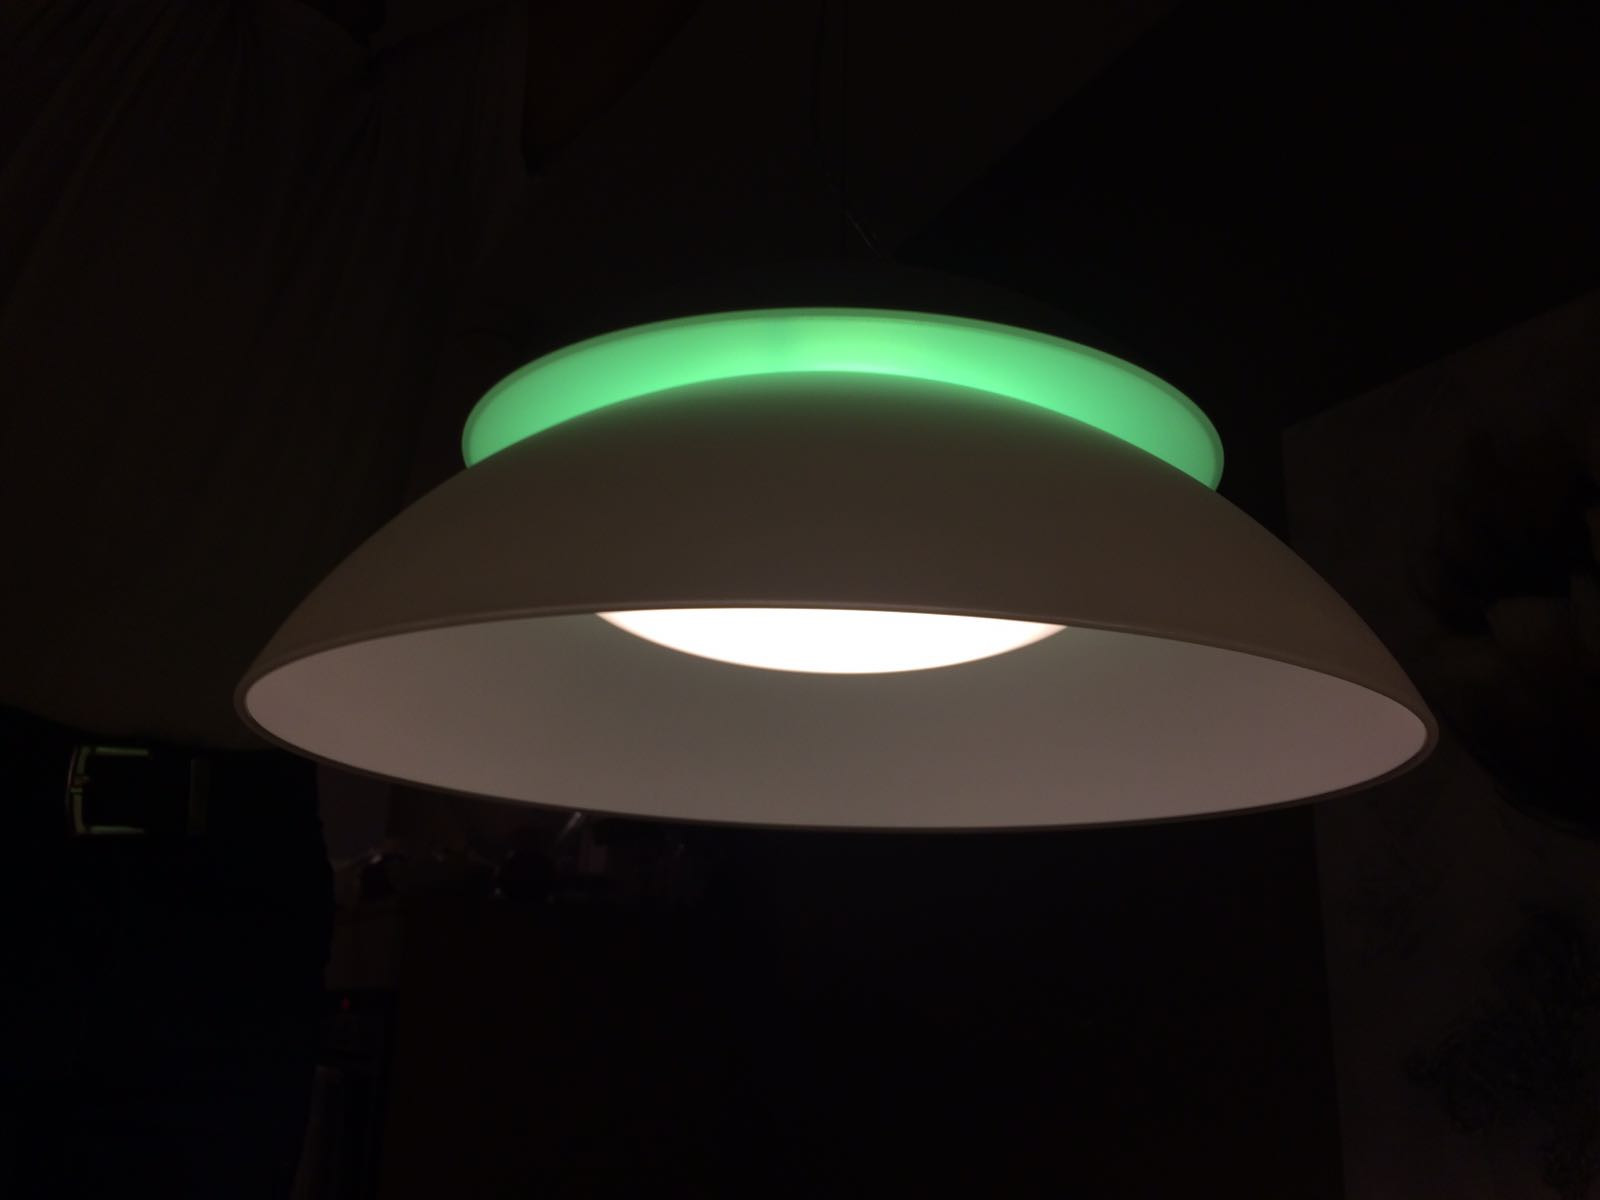 Led Verlichting Coolblue Reviews Over Philips Hue Beyond Hanglamp Single Pack